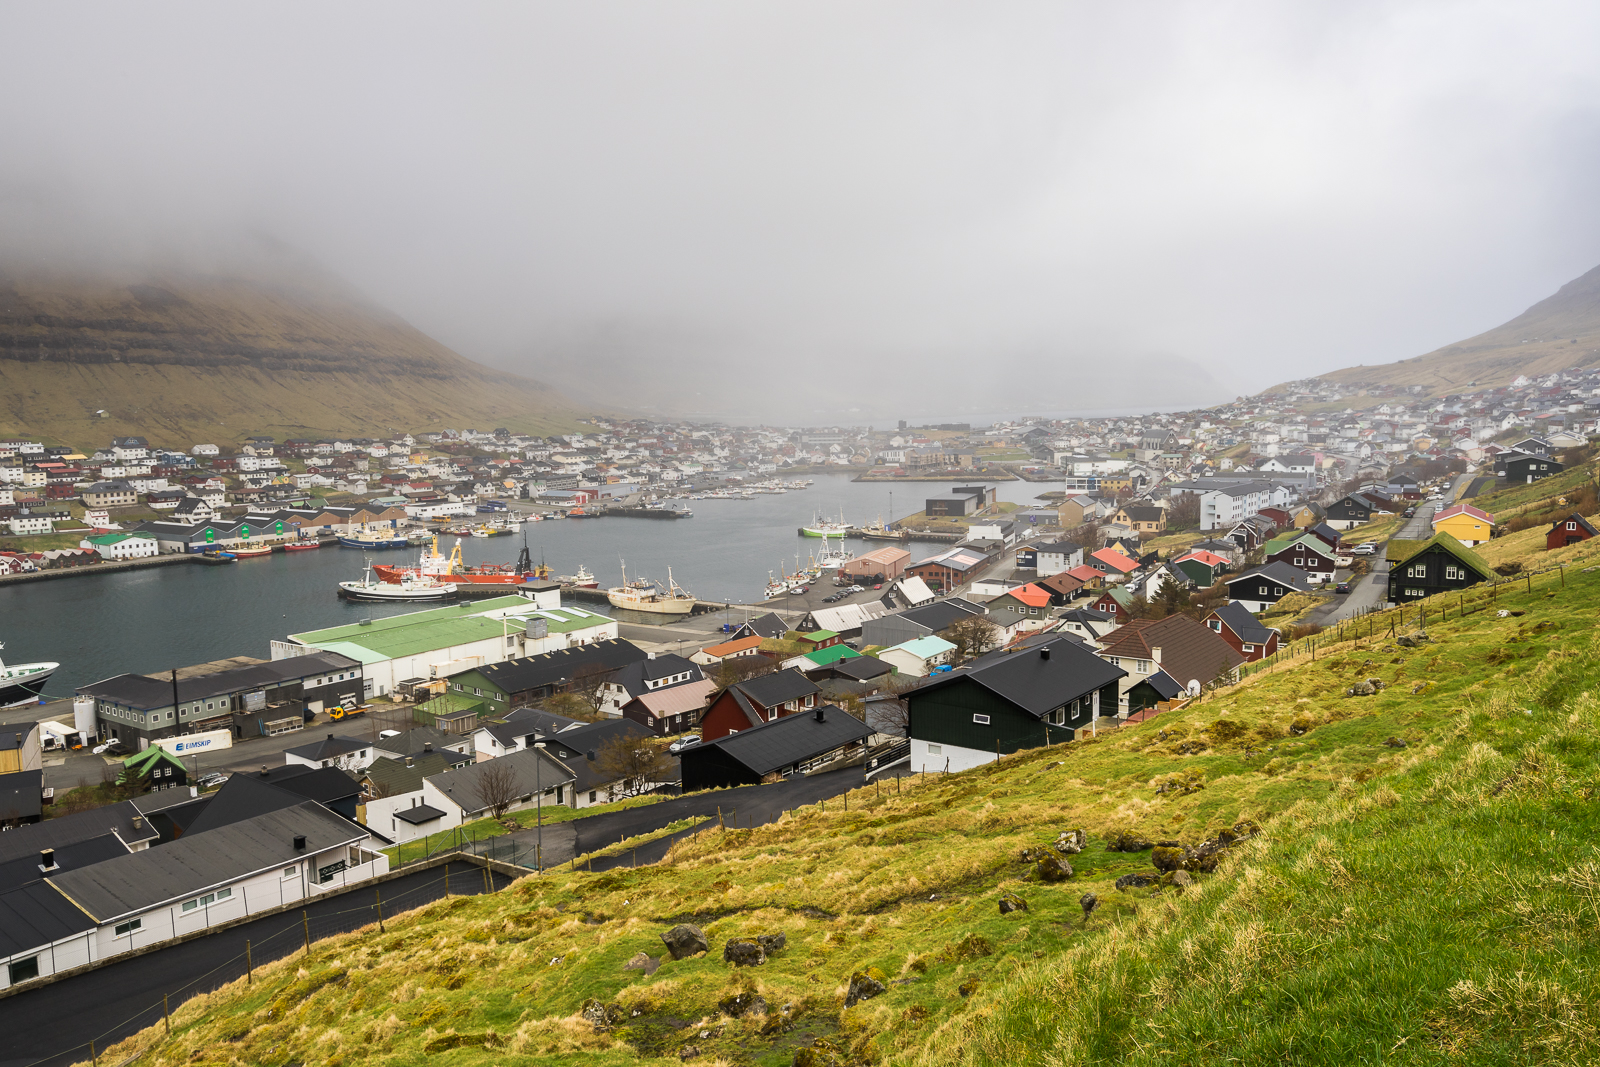 Klaksvik from above. Foggy and rainy, still very beautiful